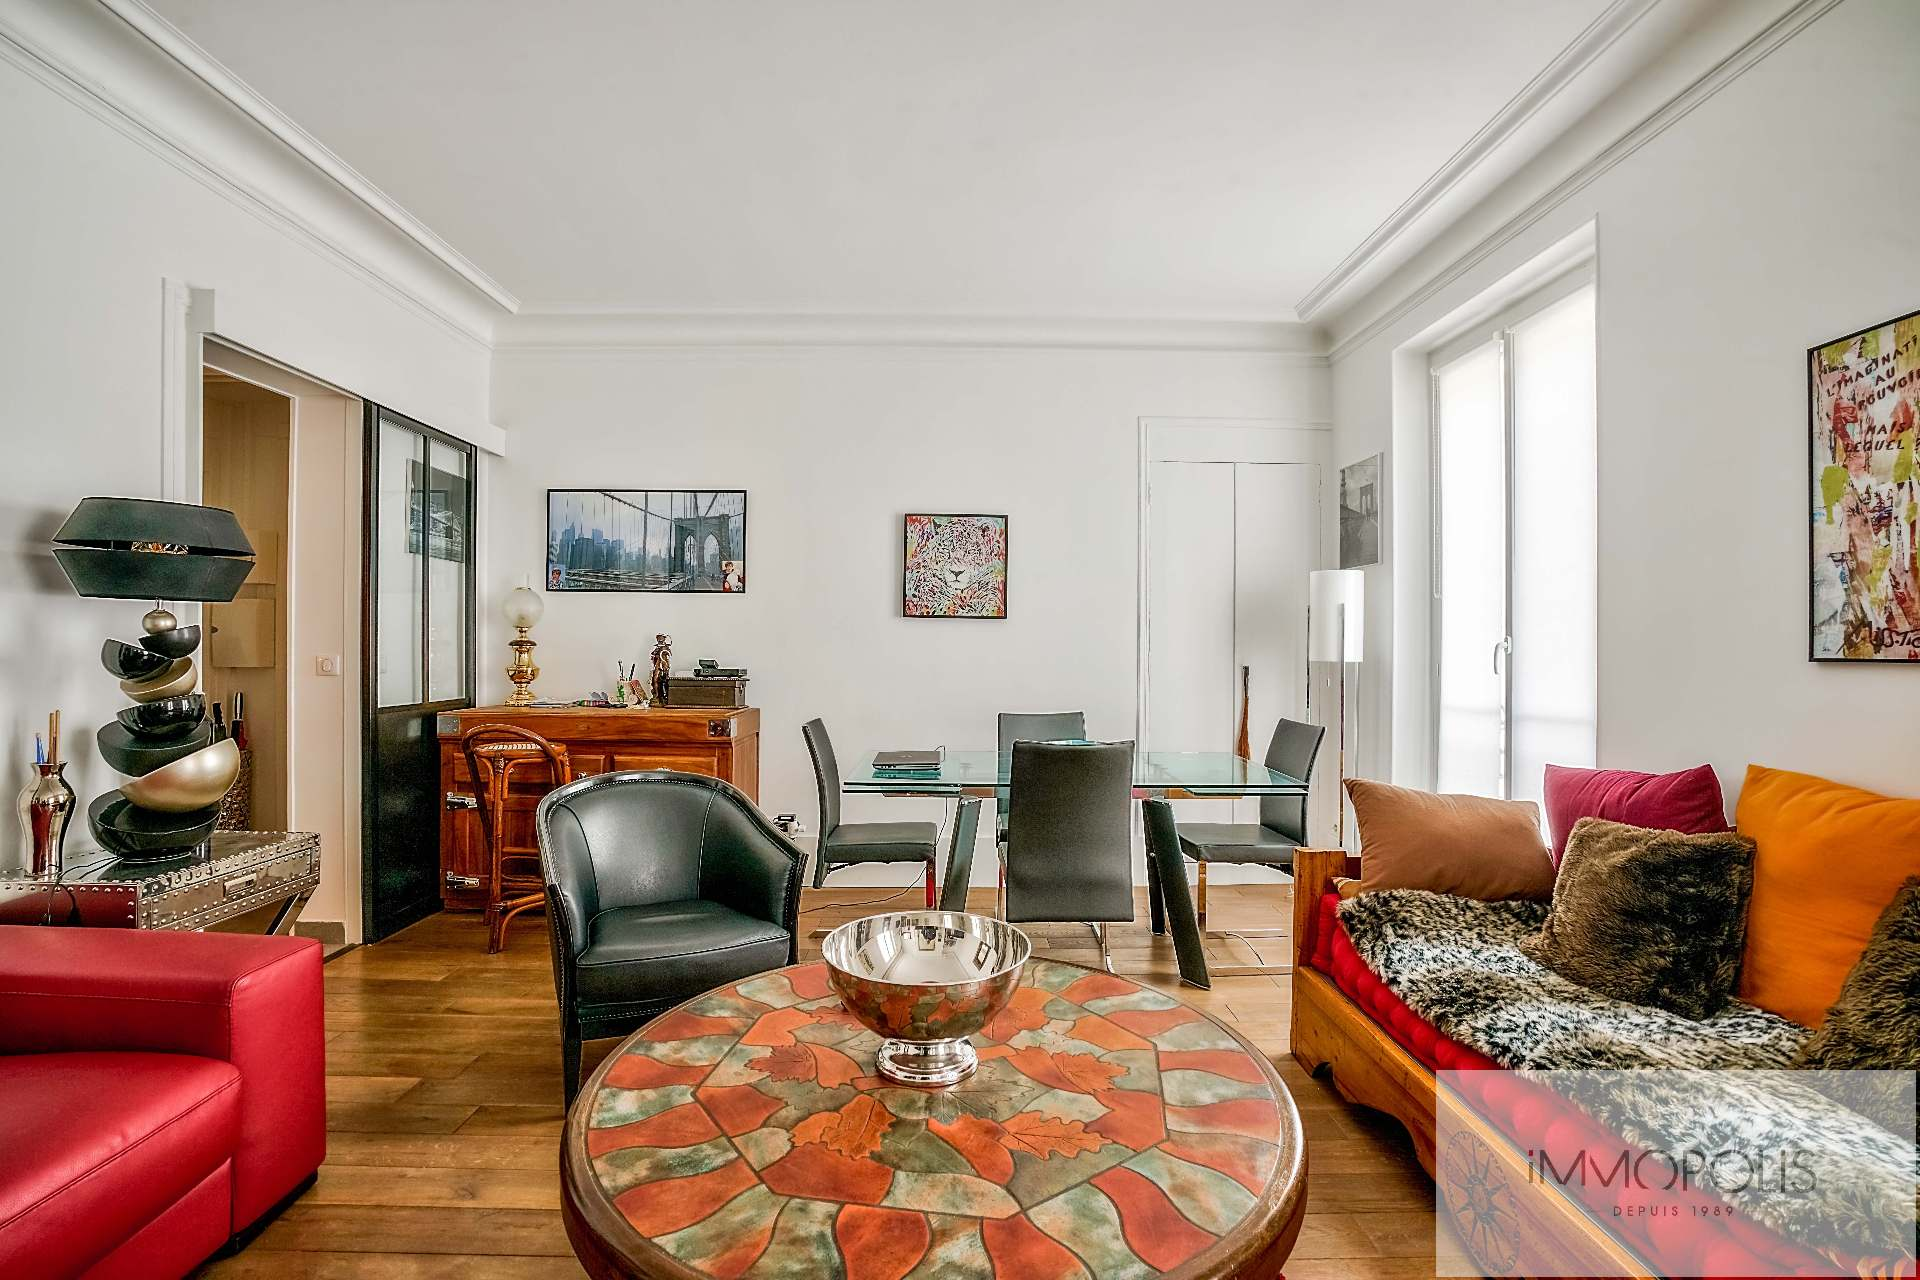 Superb 3 room apartment (currently 1 bedroom) in Montmartre, on the 3rd floor with elevator: great amenities! 2